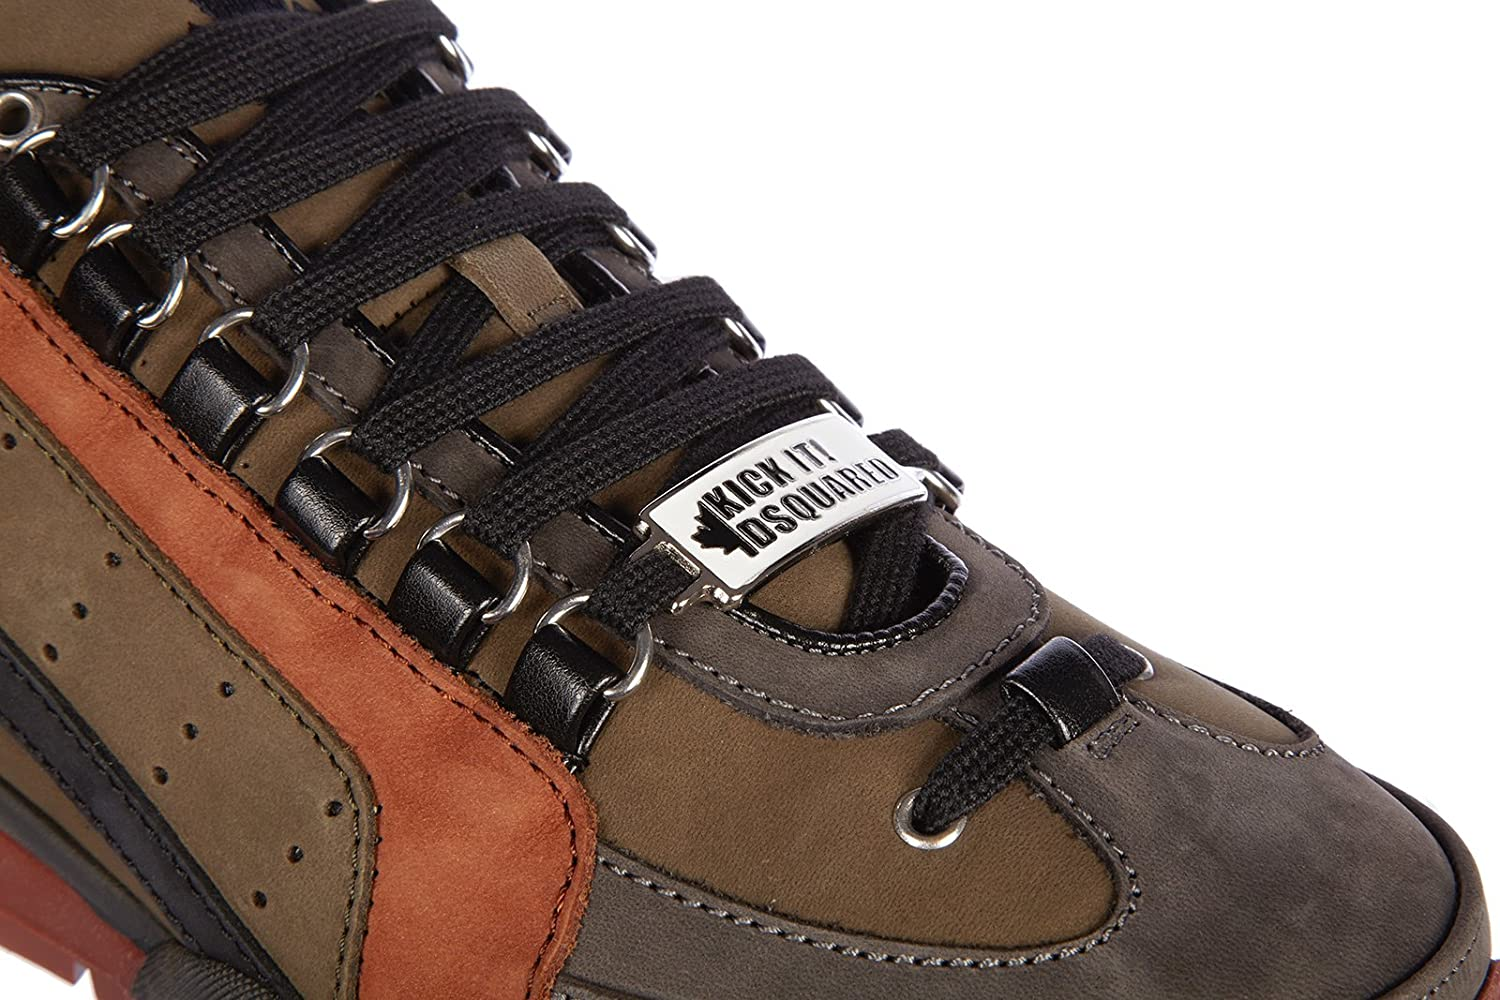 Amazon.com: DSQUARED2 Mens Shoes Leather Trainers Sneakers 551 Nabuk Brown US Size 12 W15SN404097M124: Shoes